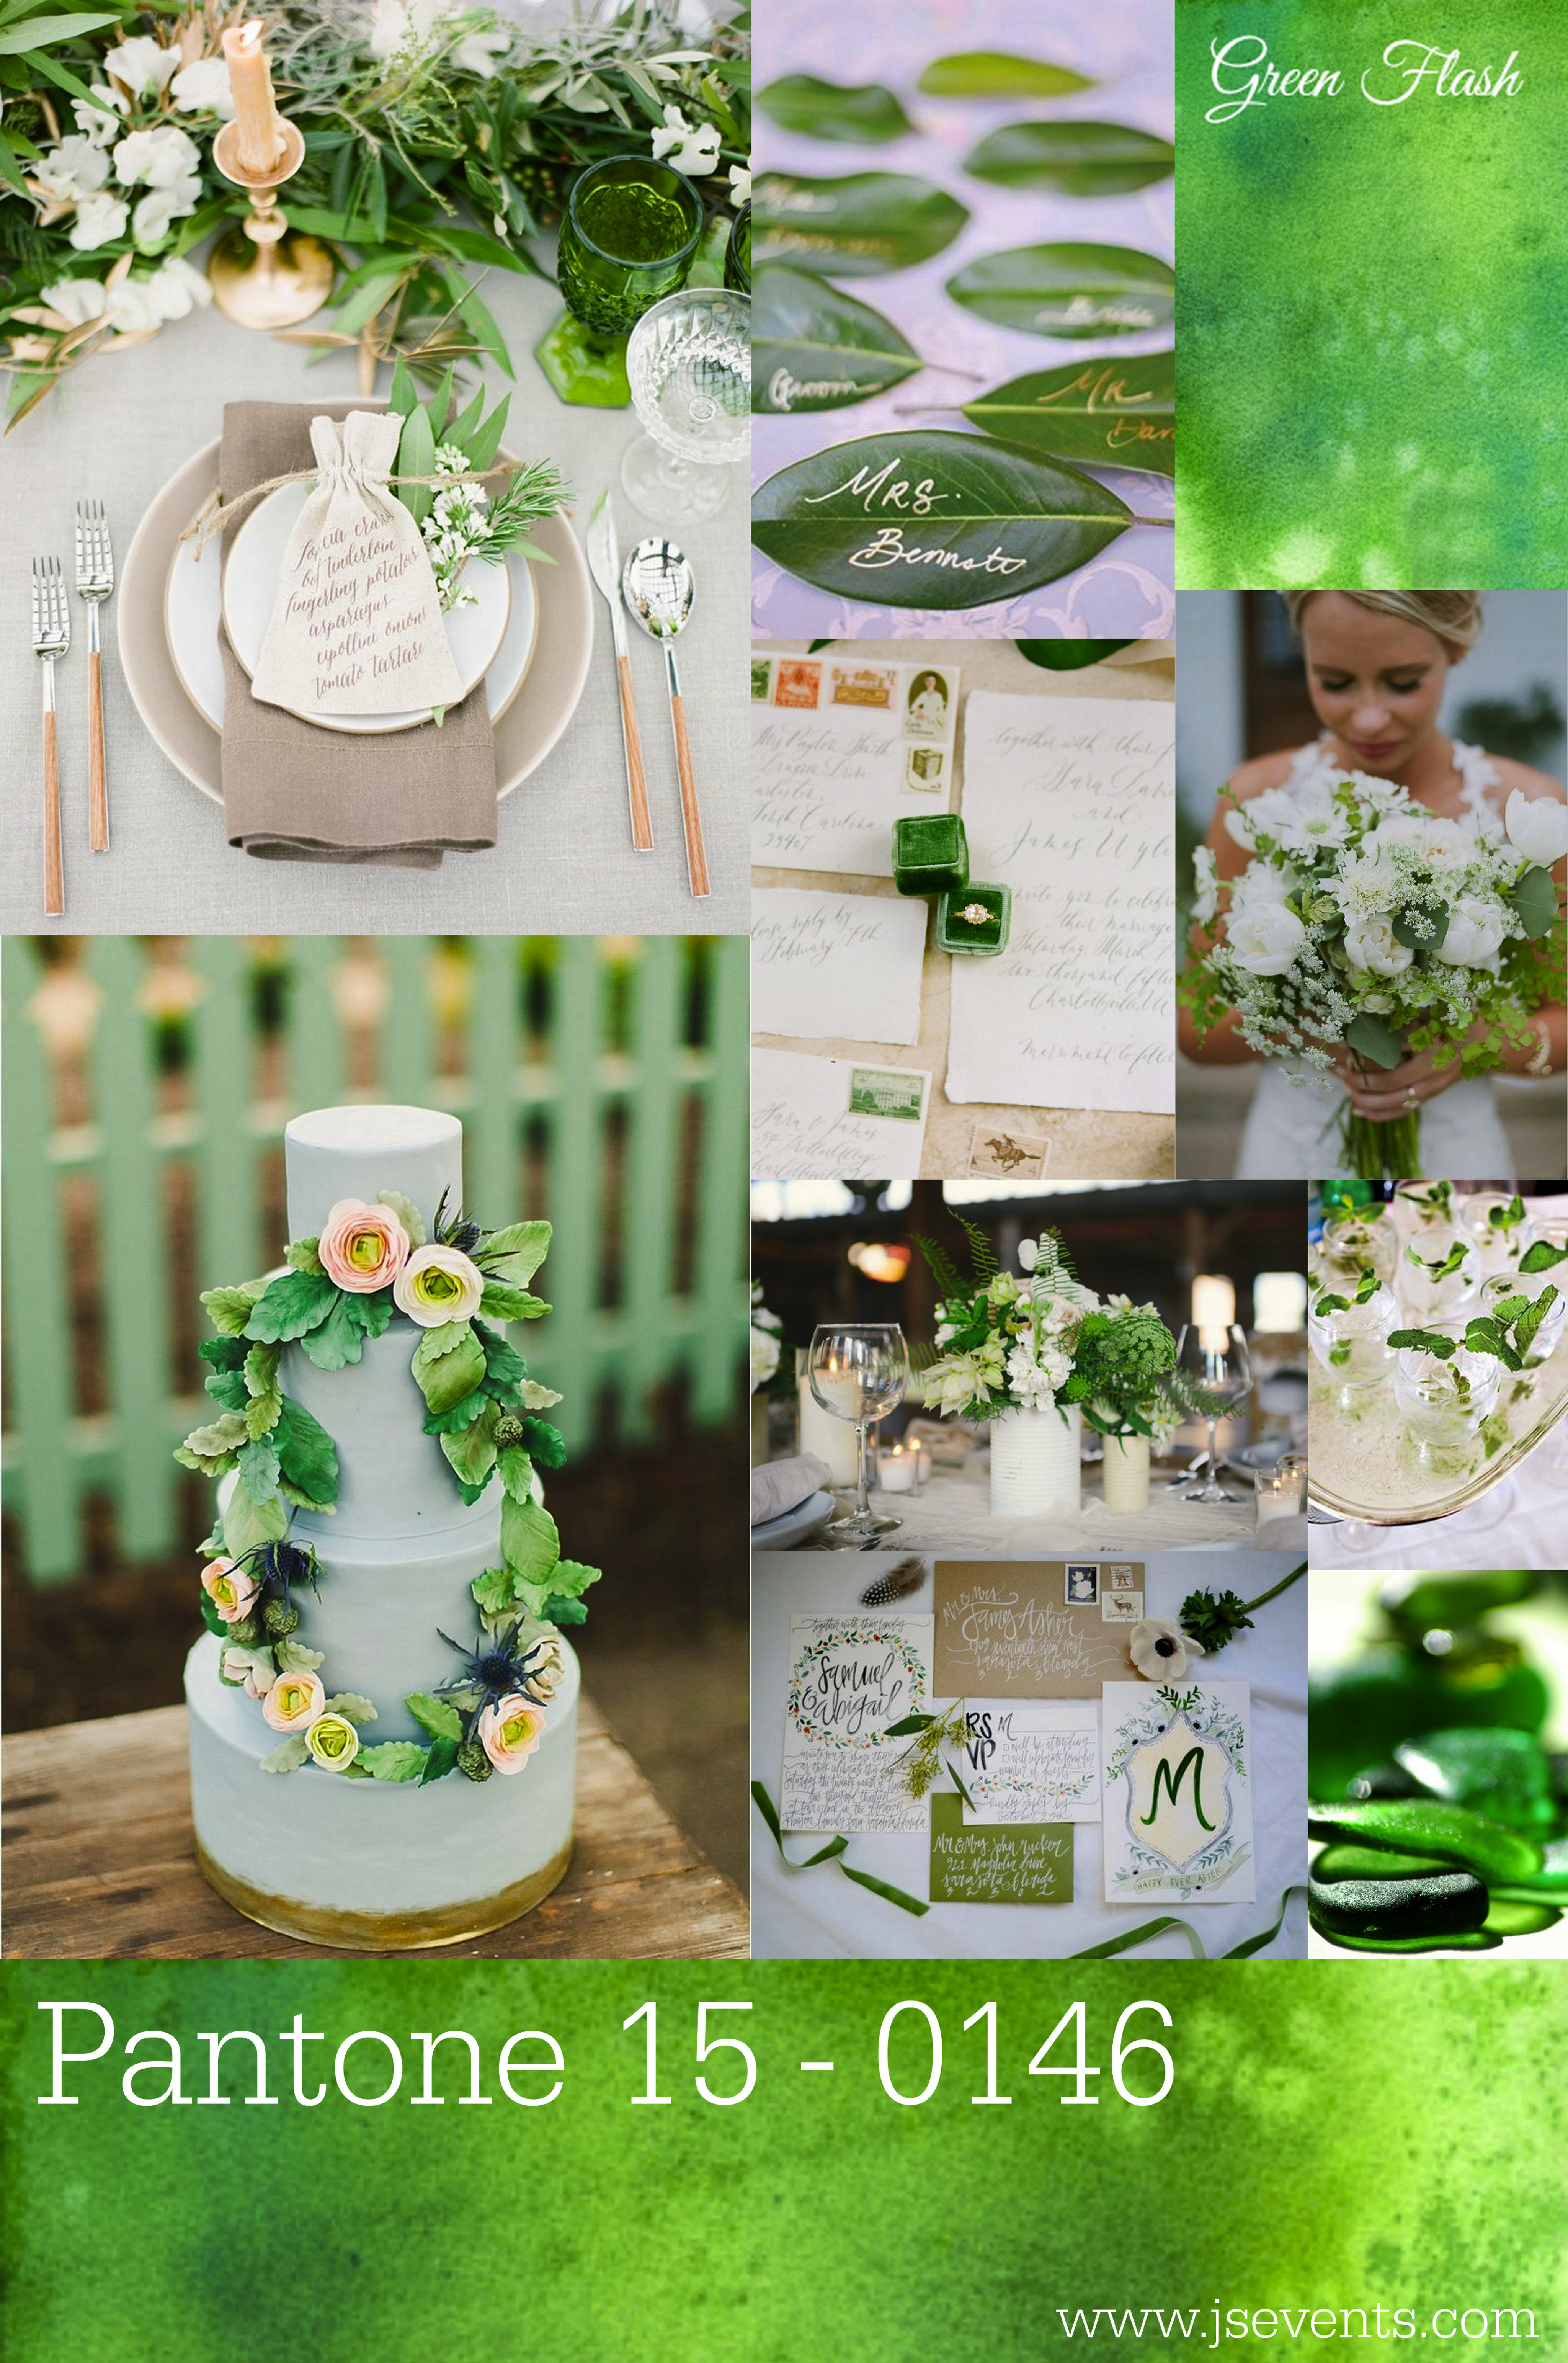 2016 color trend green flash js weddings and events